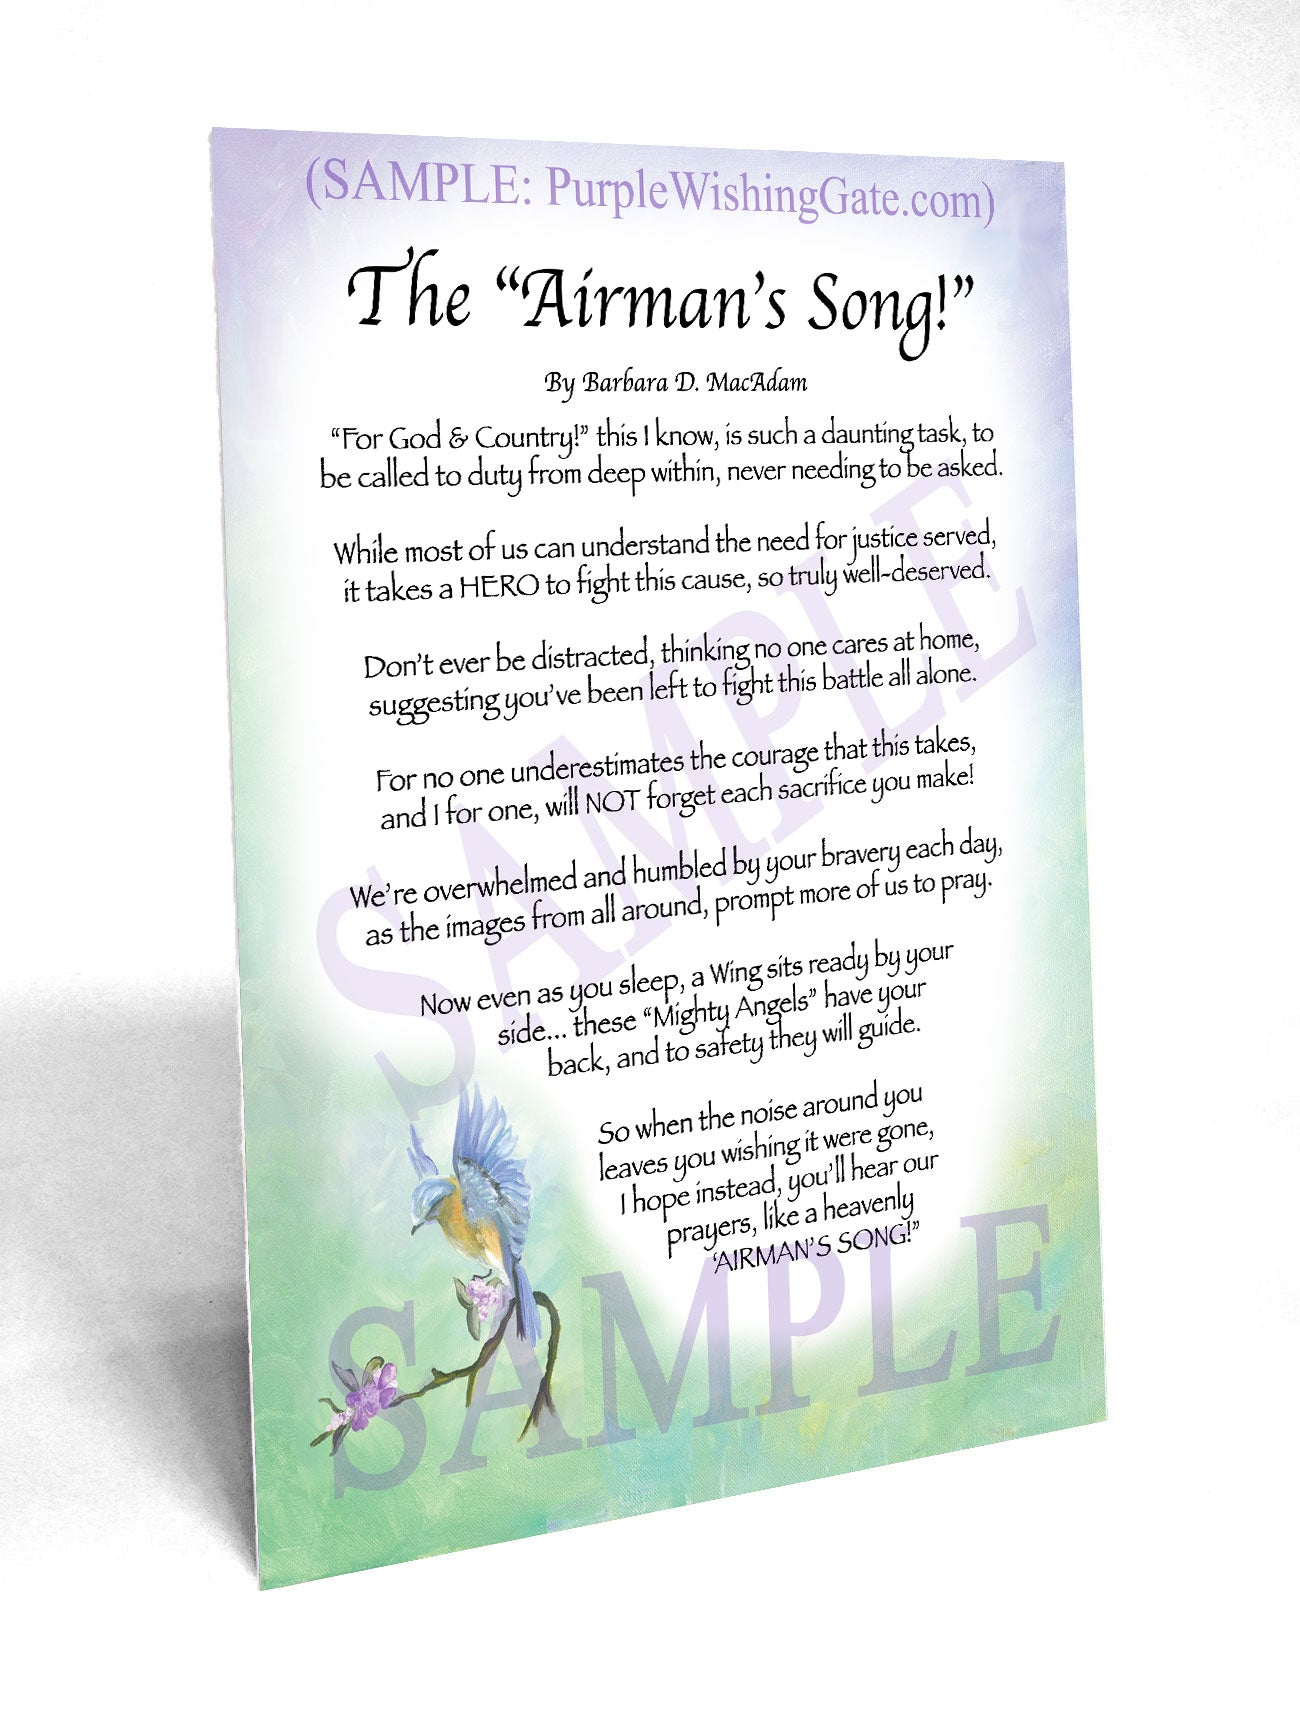 The Airman's Song! - Military Gift - PurpleWishingGate.com